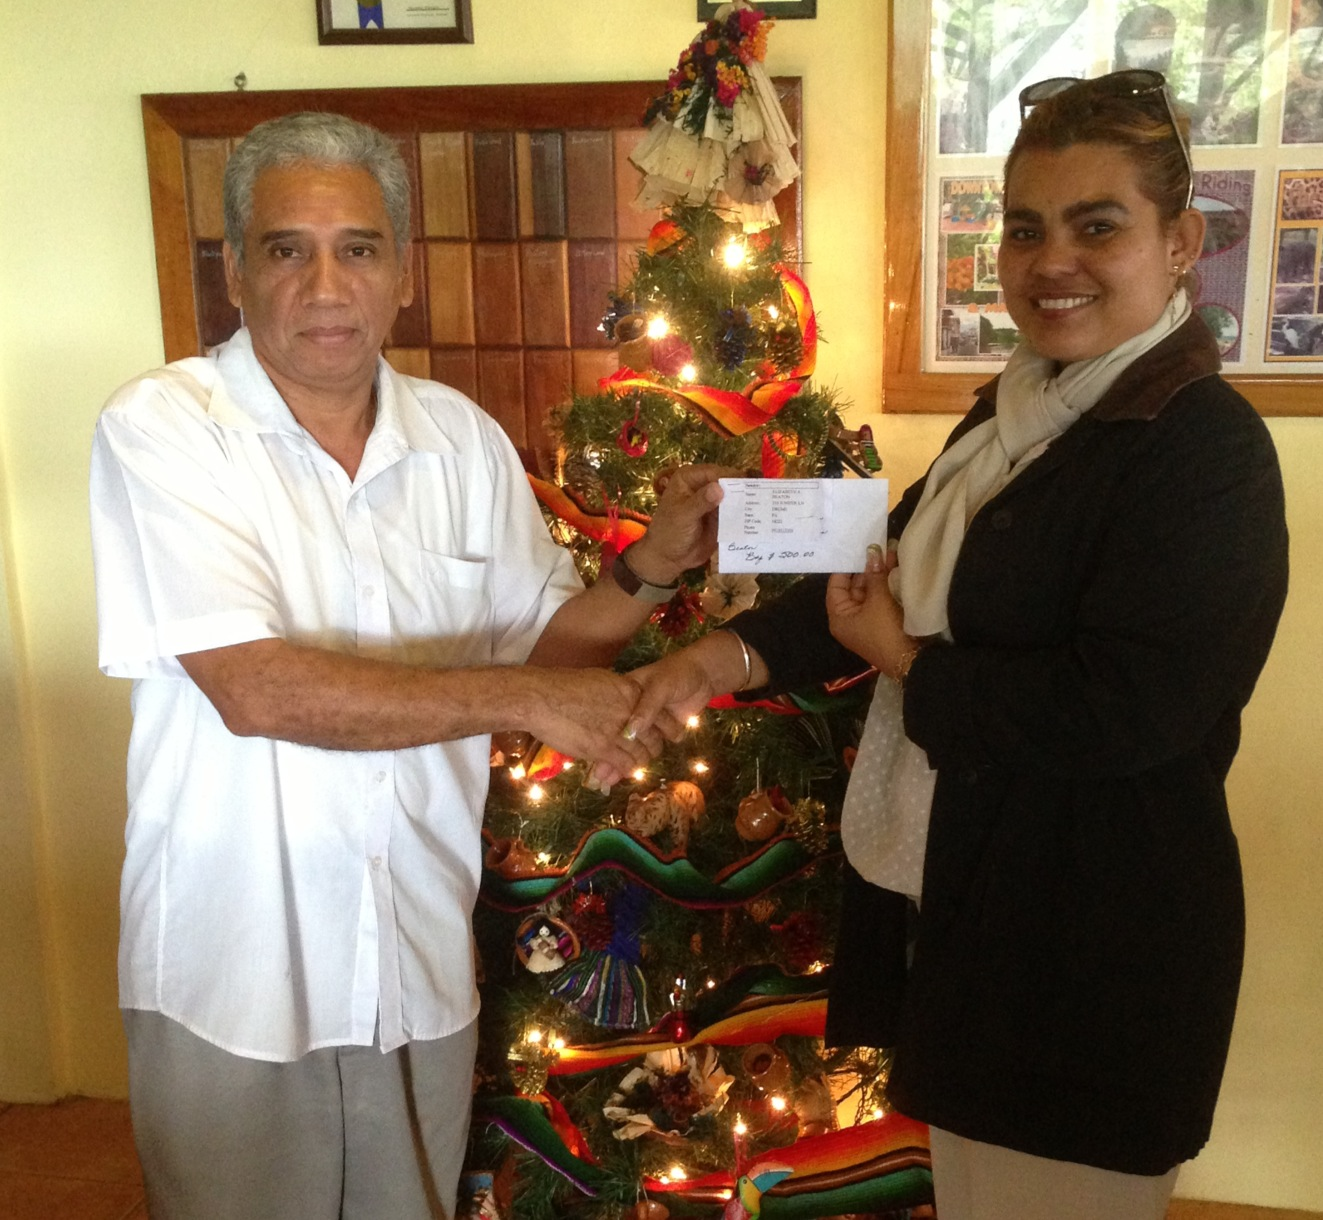 (Left) Octavia Waight Centre representative receiving the cash donation from Ms Cynthia Robateau (Right) of Cahal Pech Village Resort